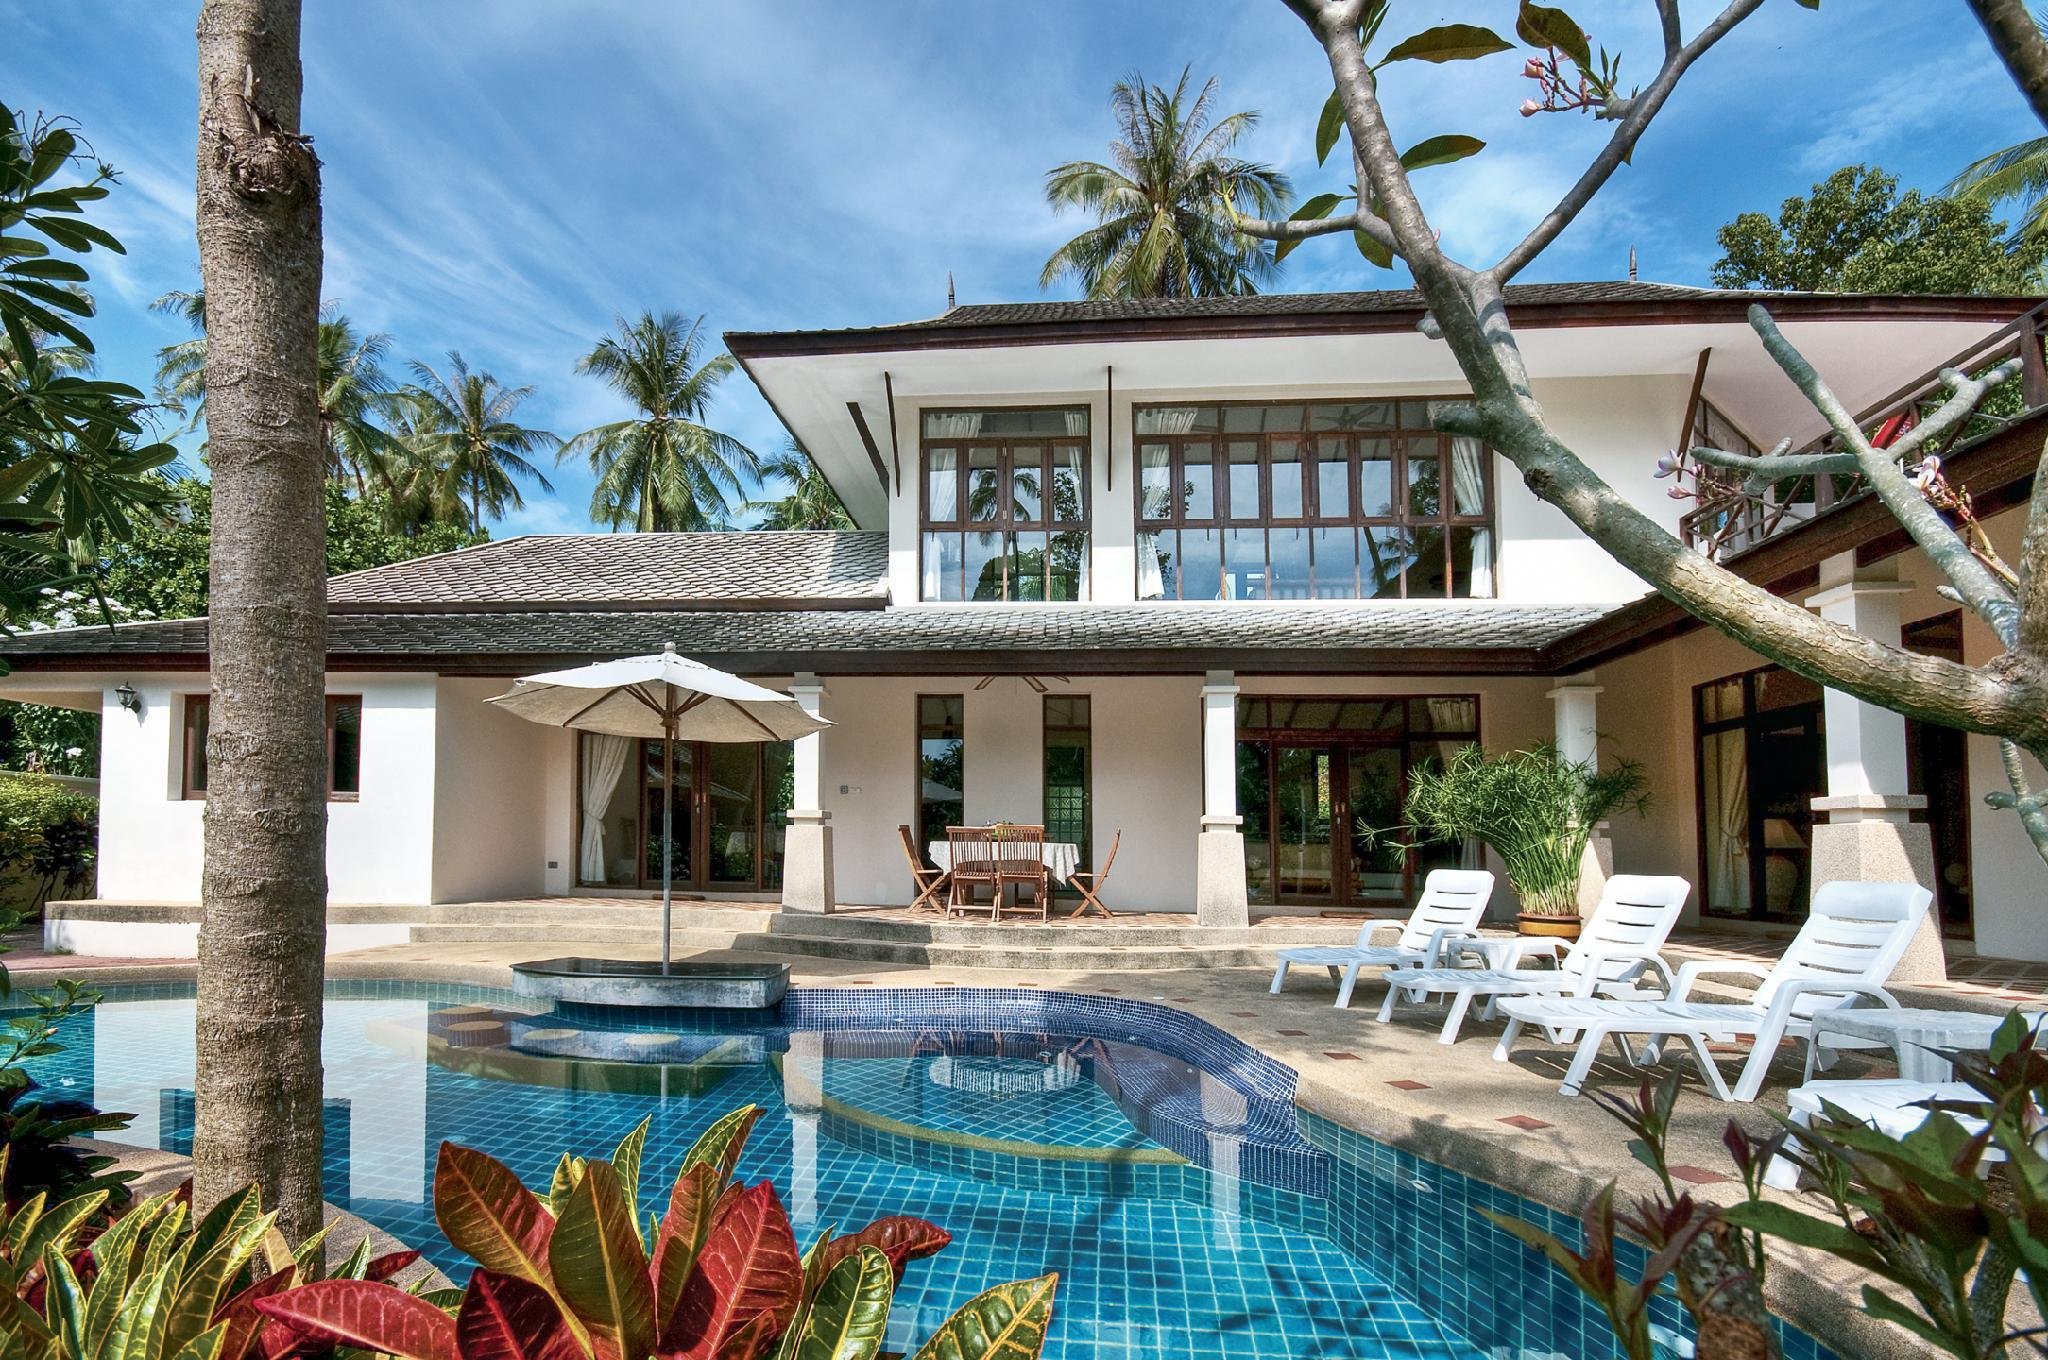 4 Bedroom Villa 1 And 30 Seconds Walk To The Beach